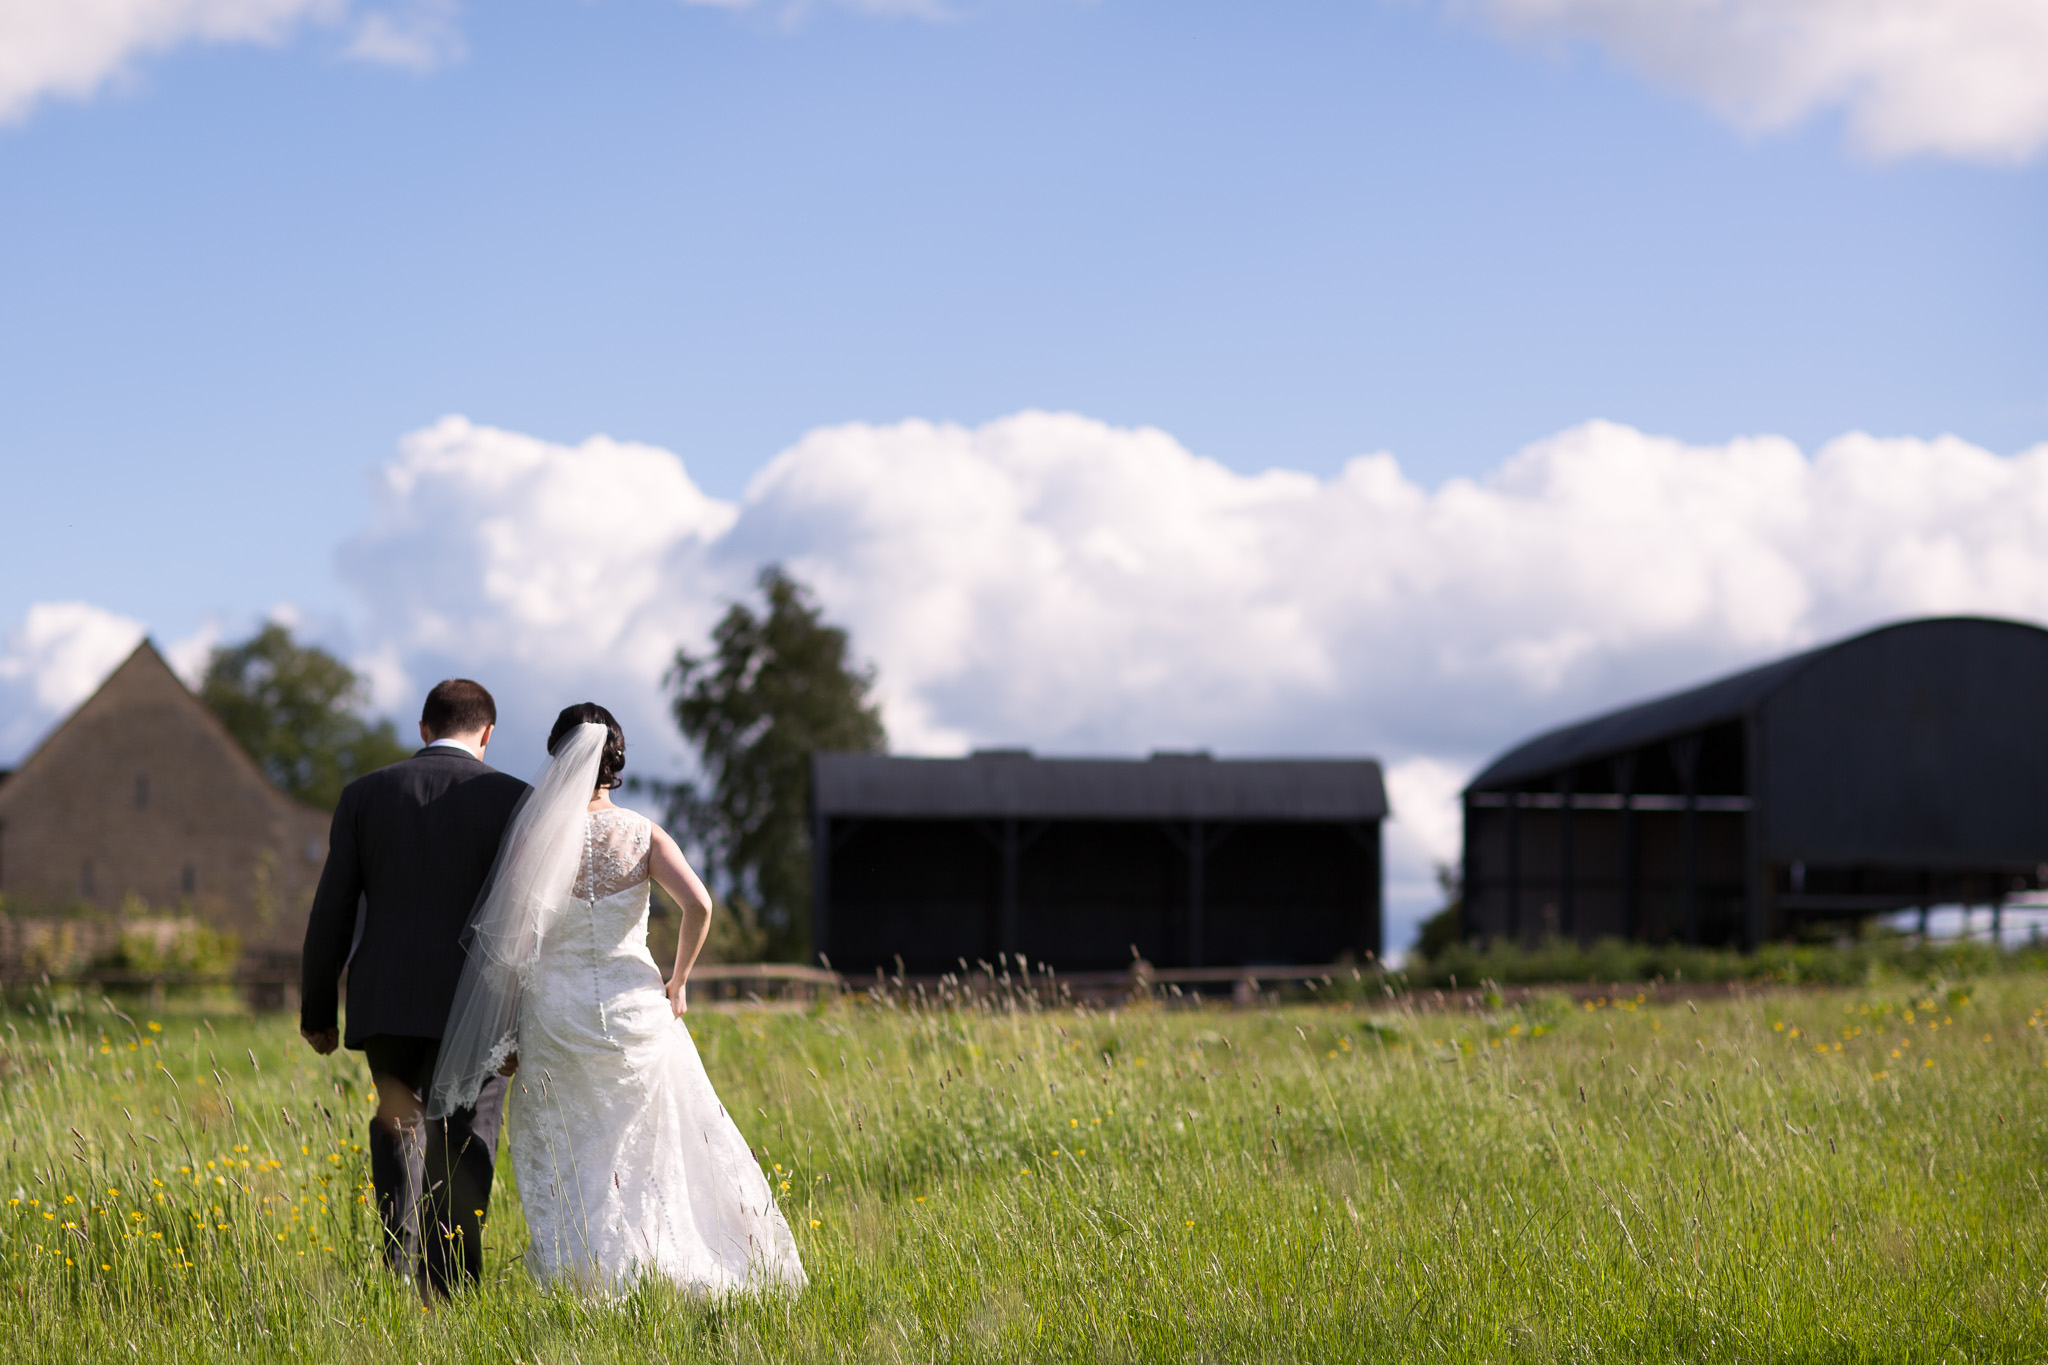 Mark_Barnes_Northern_Ireland_Wedding_Photography_Jack_and_Claire-31.jpg